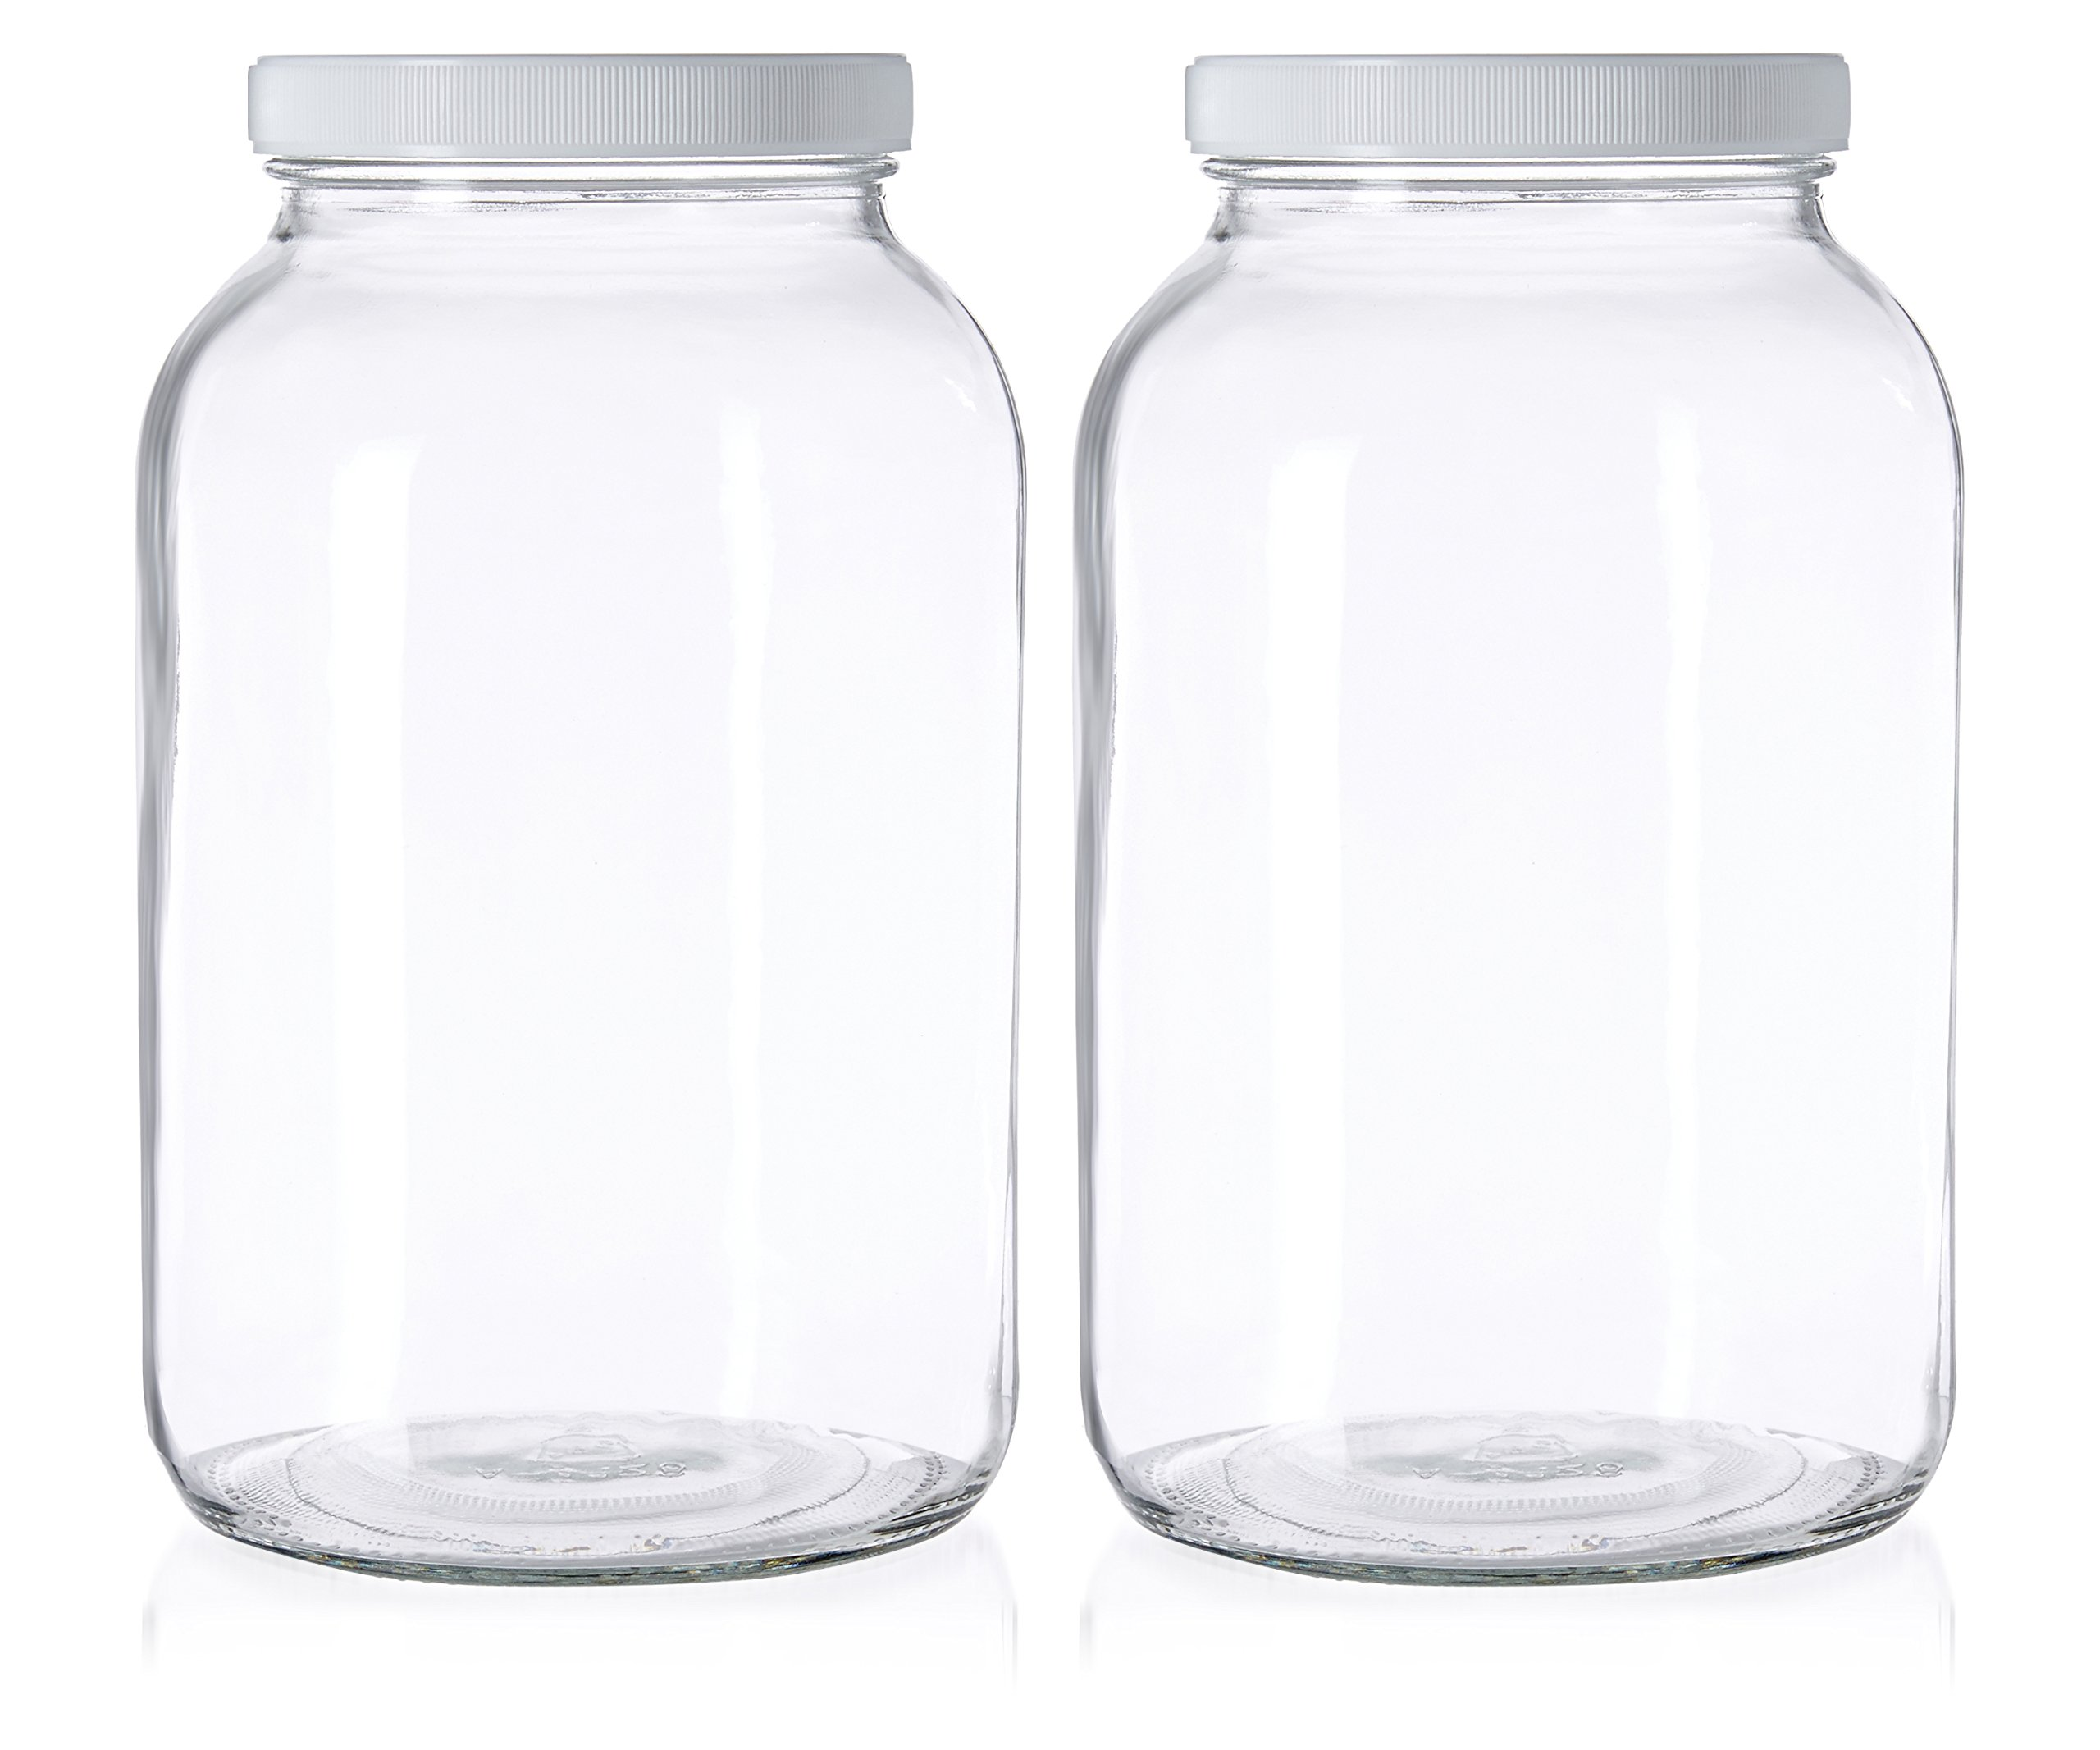 2 Pack - 1 Gallon Glass Jar Wide Mouth with Airtight Foam Lined Plastic Lid - Safe Mason Jar for Fermenting Kombucha Kefir - Pickling, Storing and Canning - By Kitchentoolz